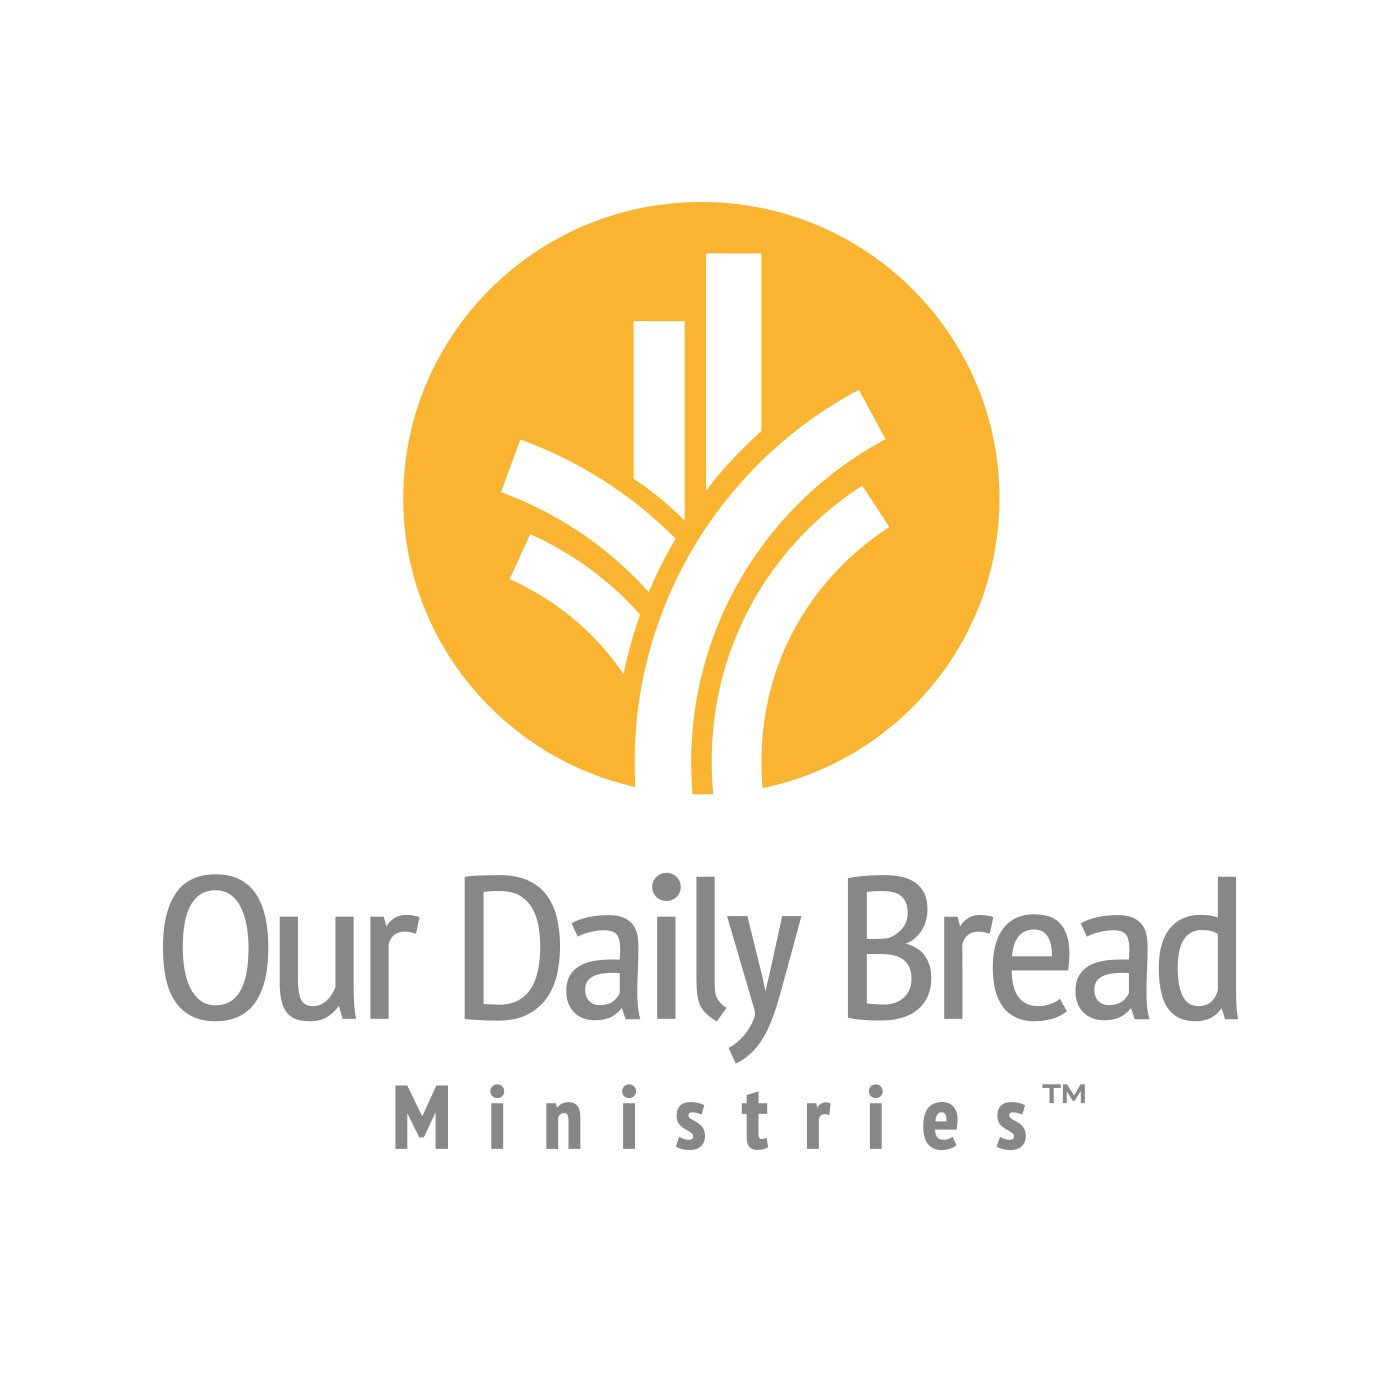 Our Daily Bread 24th November 2020, Our Daily Bread 24th November 2020 Devotional – Taught By Turkeys, Latest Nigeria News, Daily Devotionals & Celebrity Gossips - Chidispalace